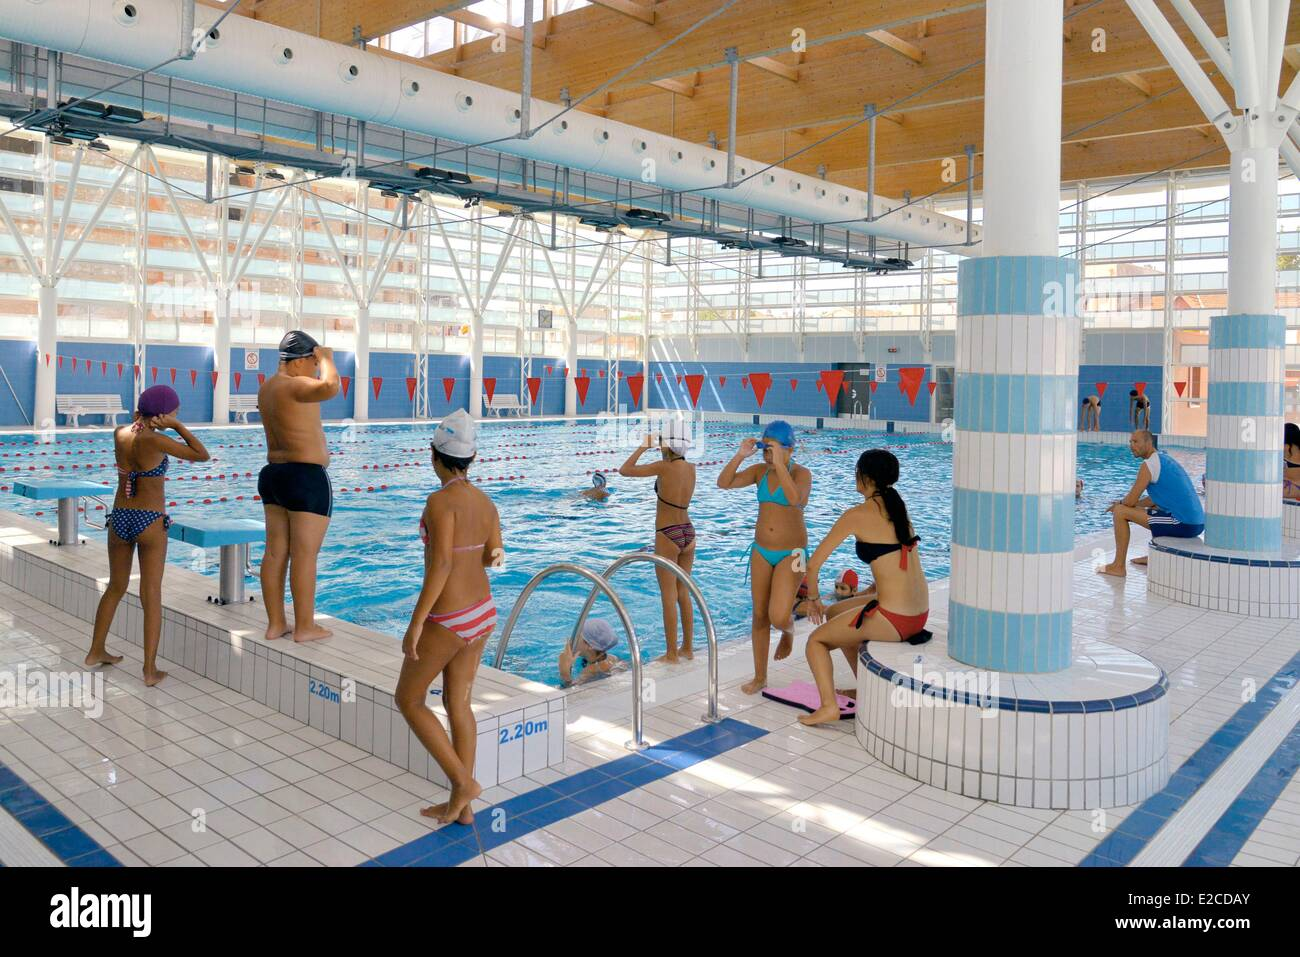 Large Swimming Pool Indoors Stock Photos Large Swimming Pool